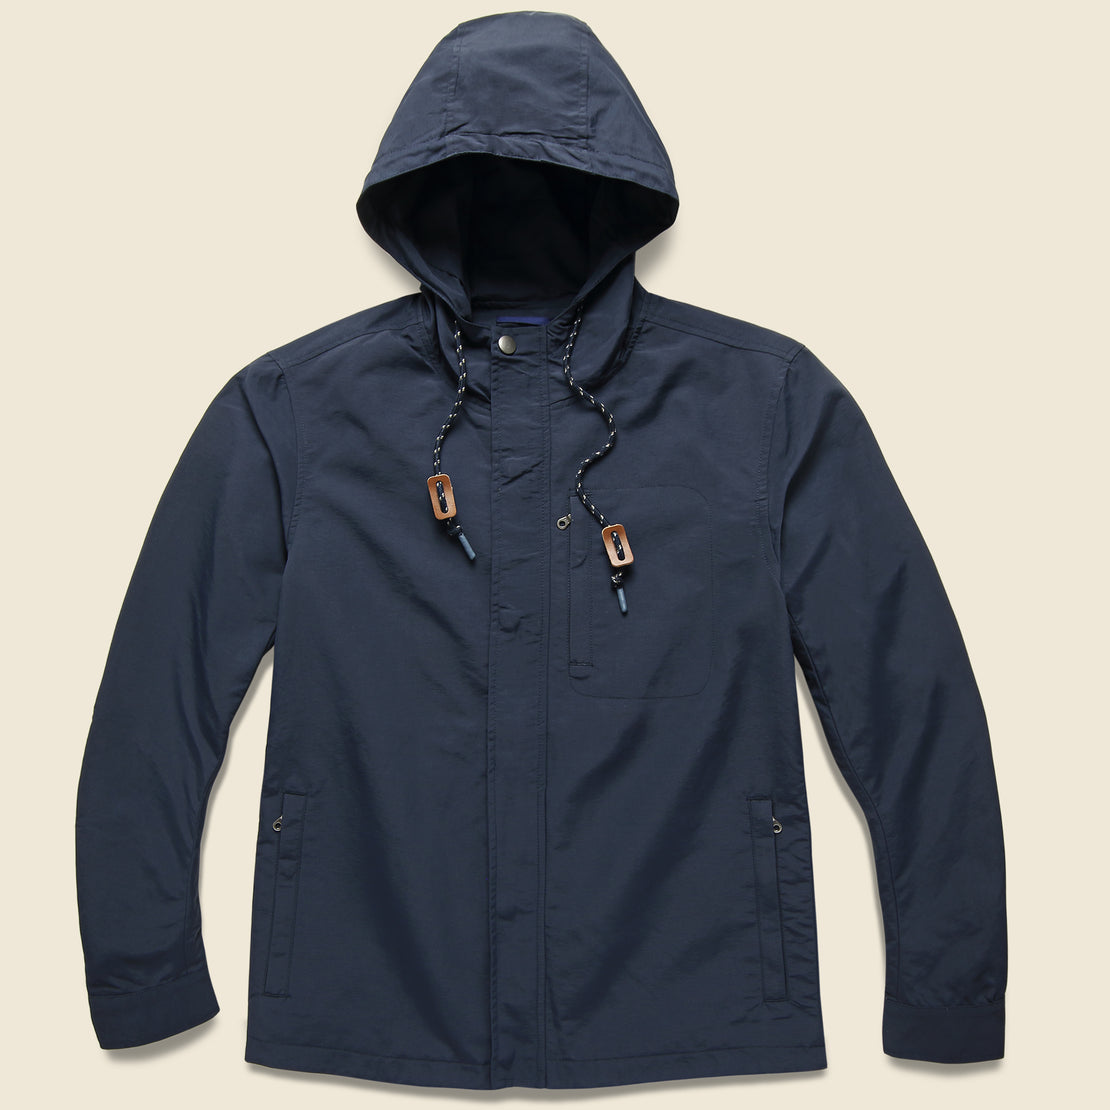 Bridge & Burn Rowland Jacket - Navy